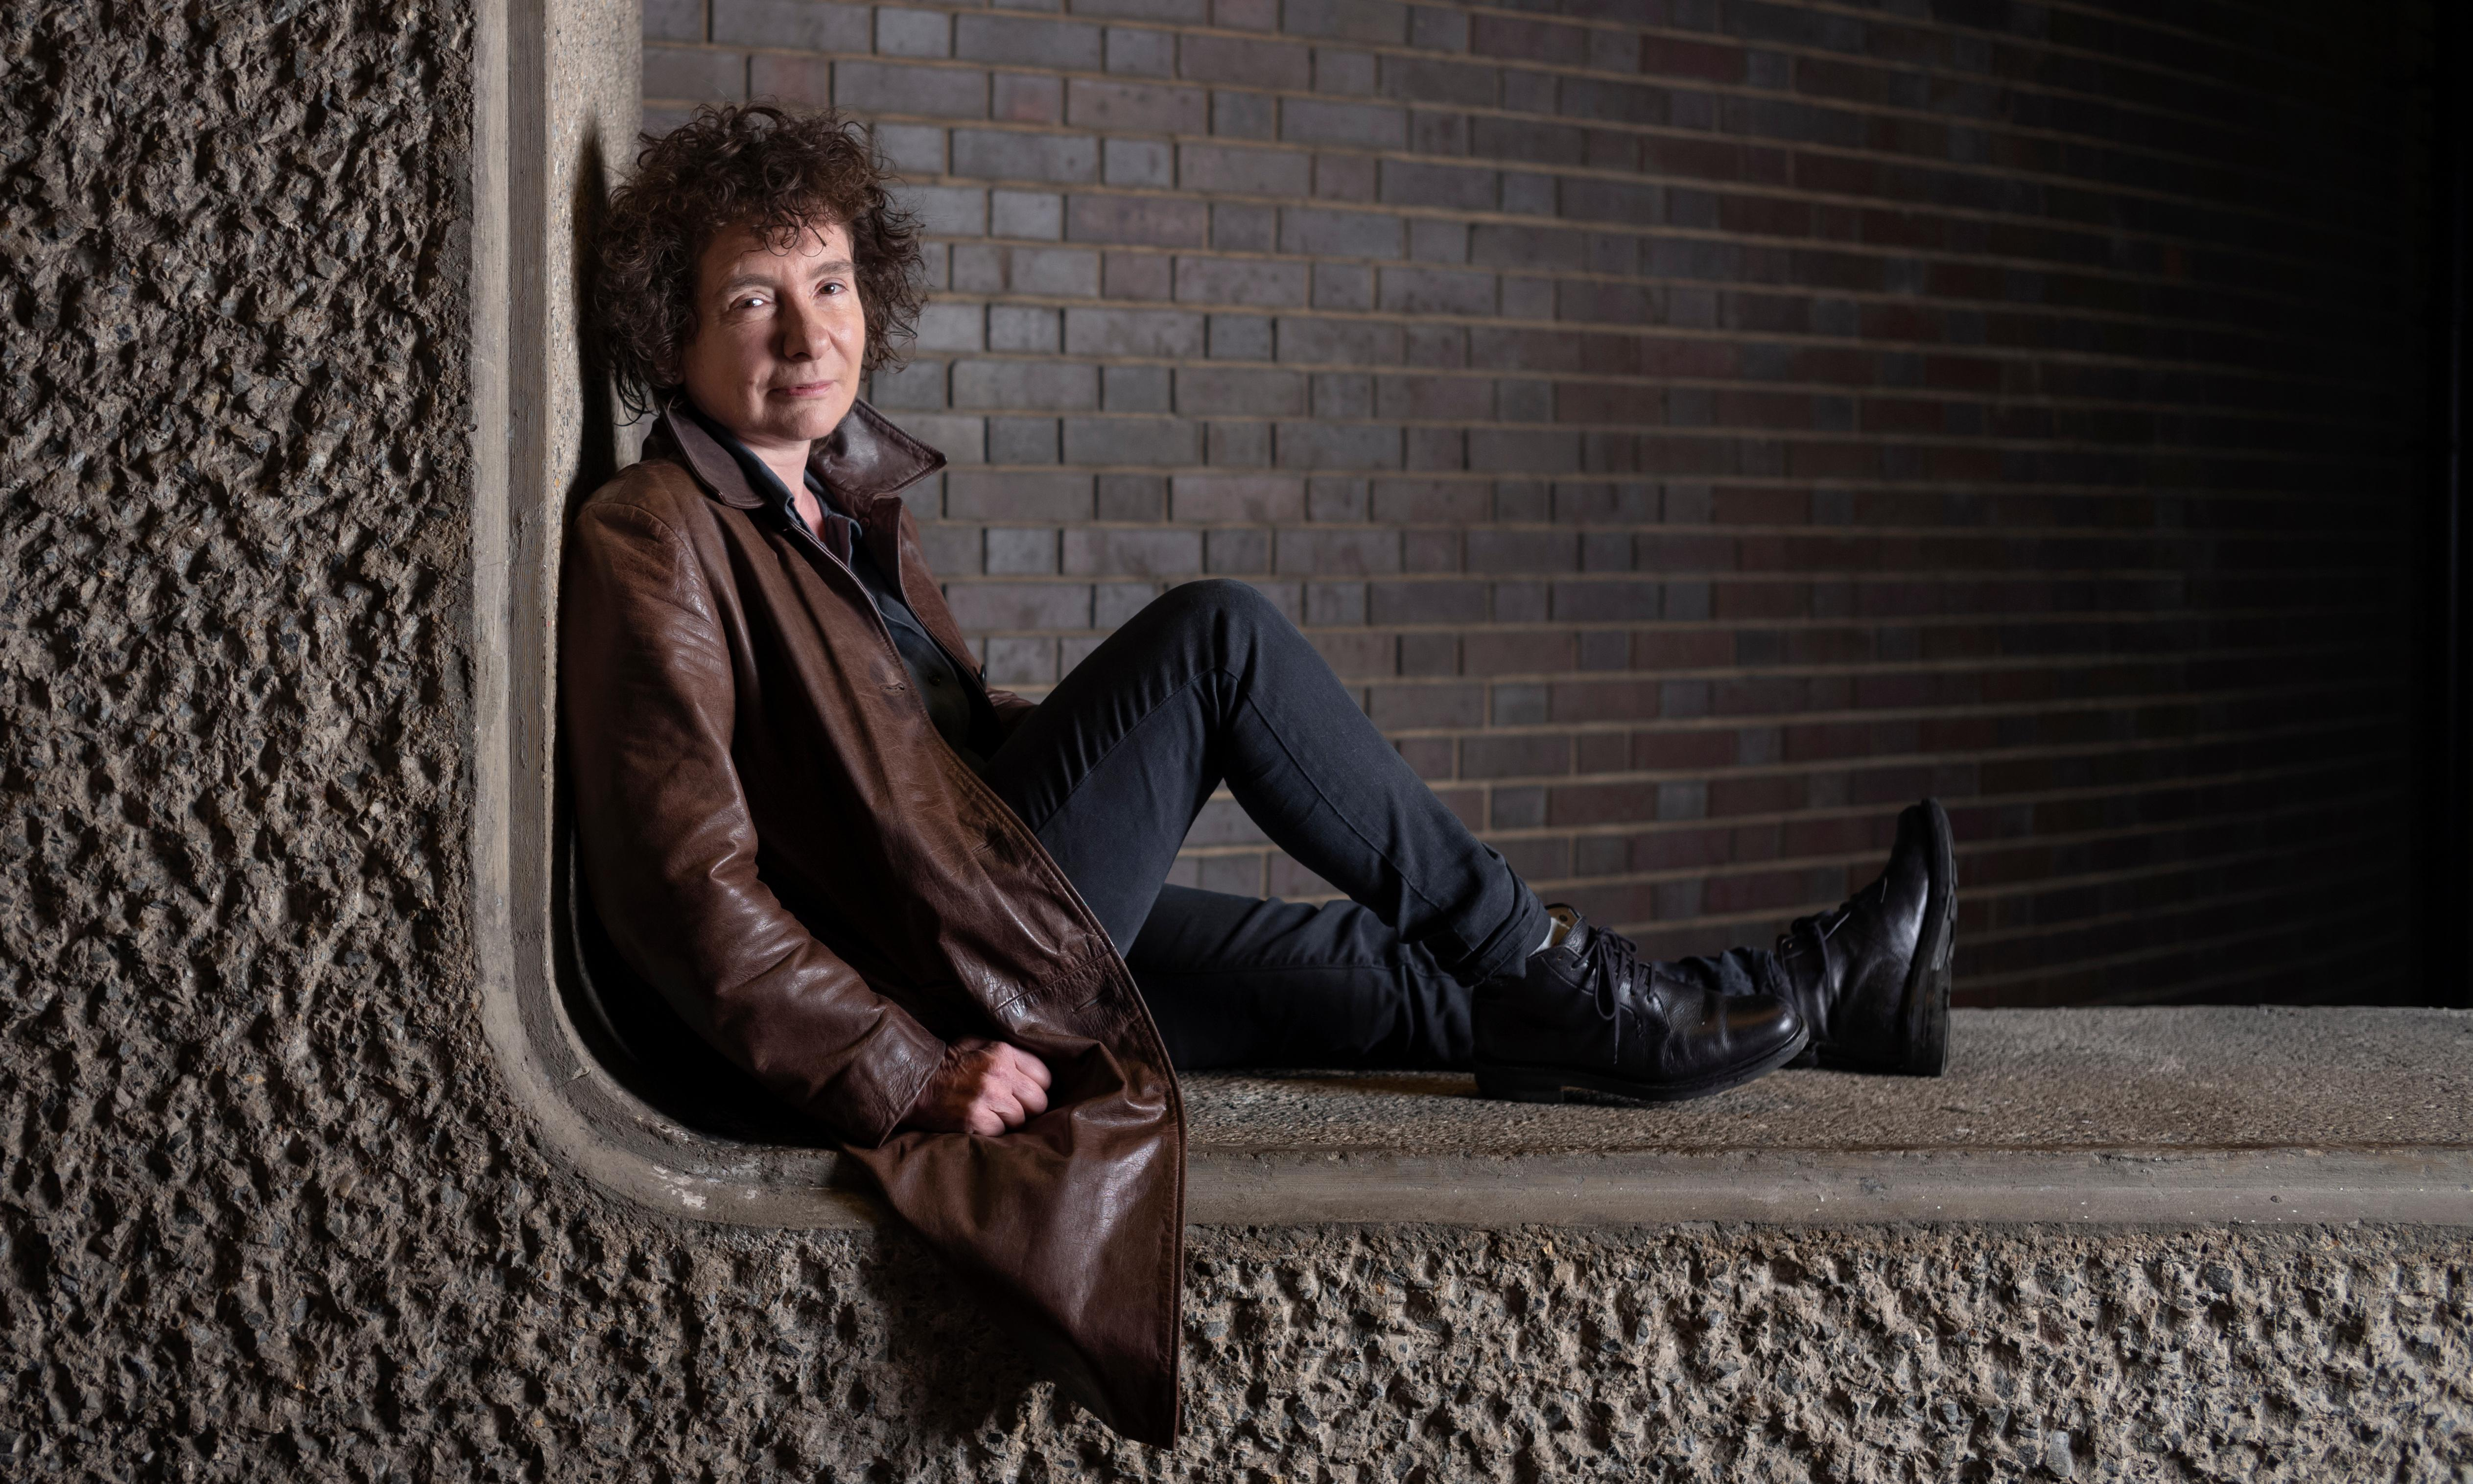 Jeanette Winterson: 'I did worry about looking at sex bots'